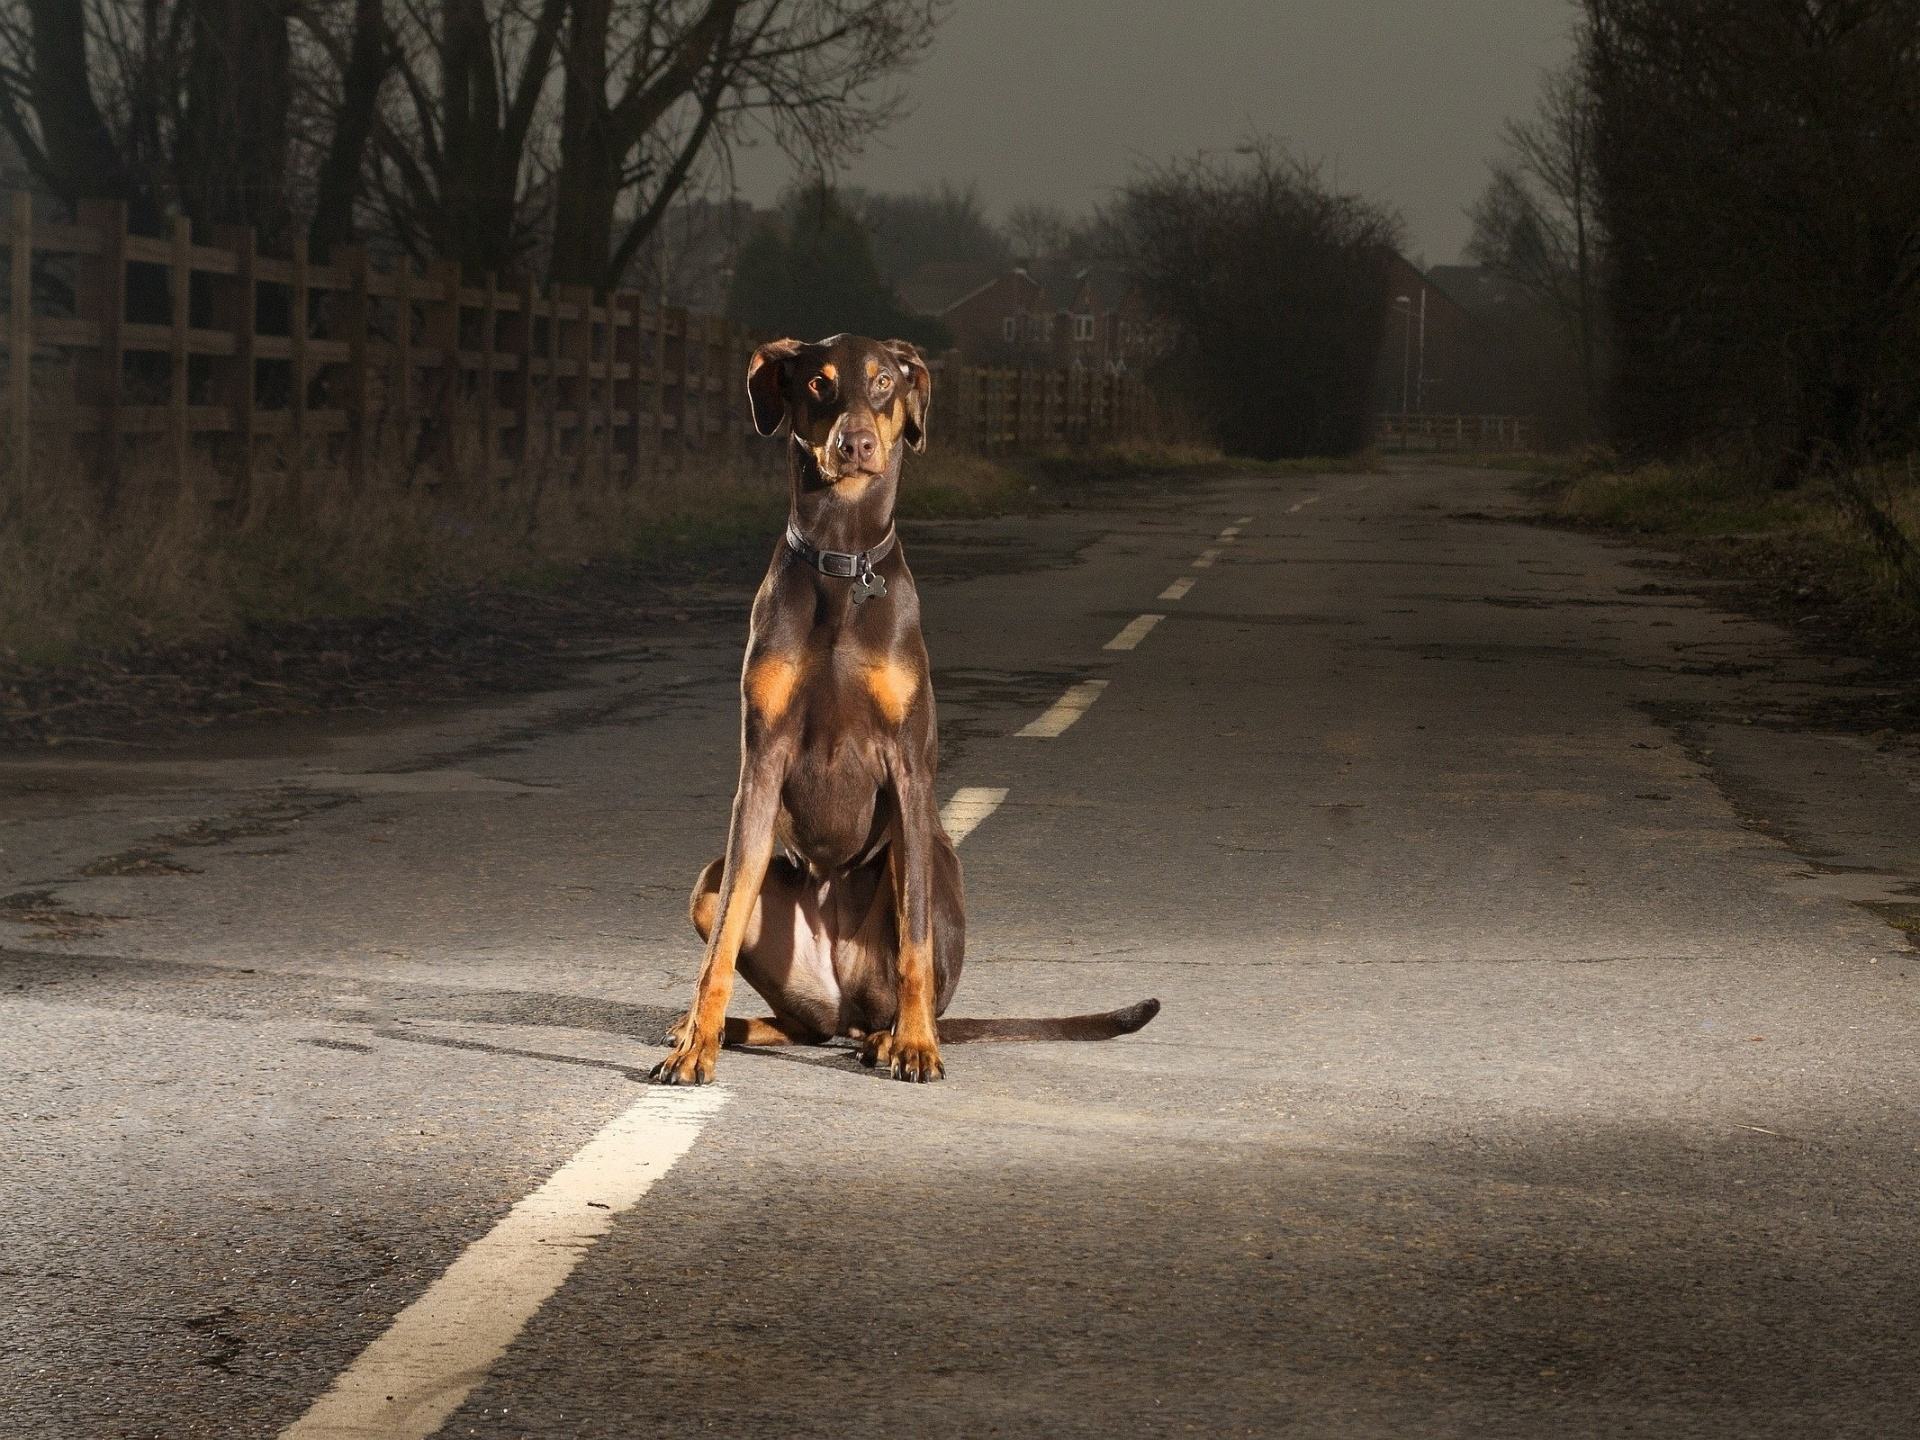 Description: The Wallpaper above is Doberman Night Wallpaper in Resolution 1920x1440. Choose your Resolution and Download Doberman Night Wallpaper